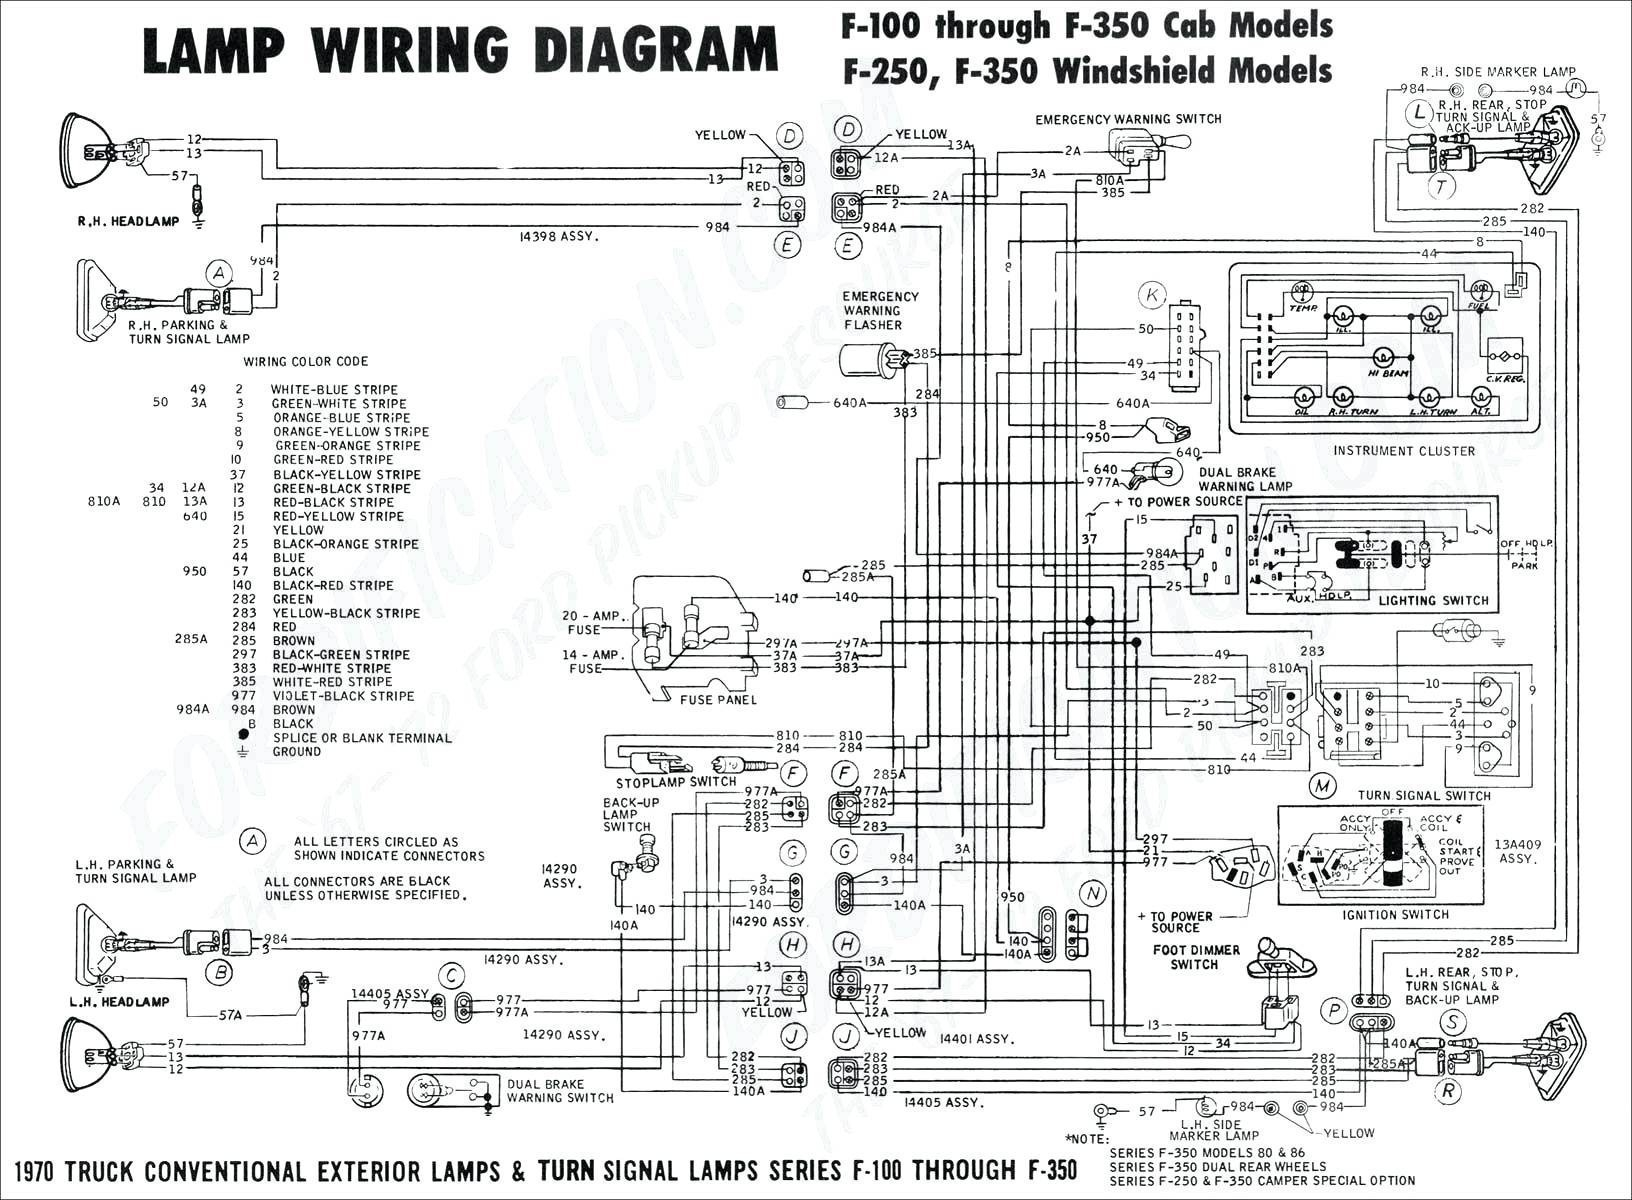 2003 dodge ram 1500 wiring diagram Download-2003 Dodge Ram 1500 Ignition Wiring Diagram Save 1996 Dodge Ram 1500 Ignition Wiring Diagram Inspirationa 5-t